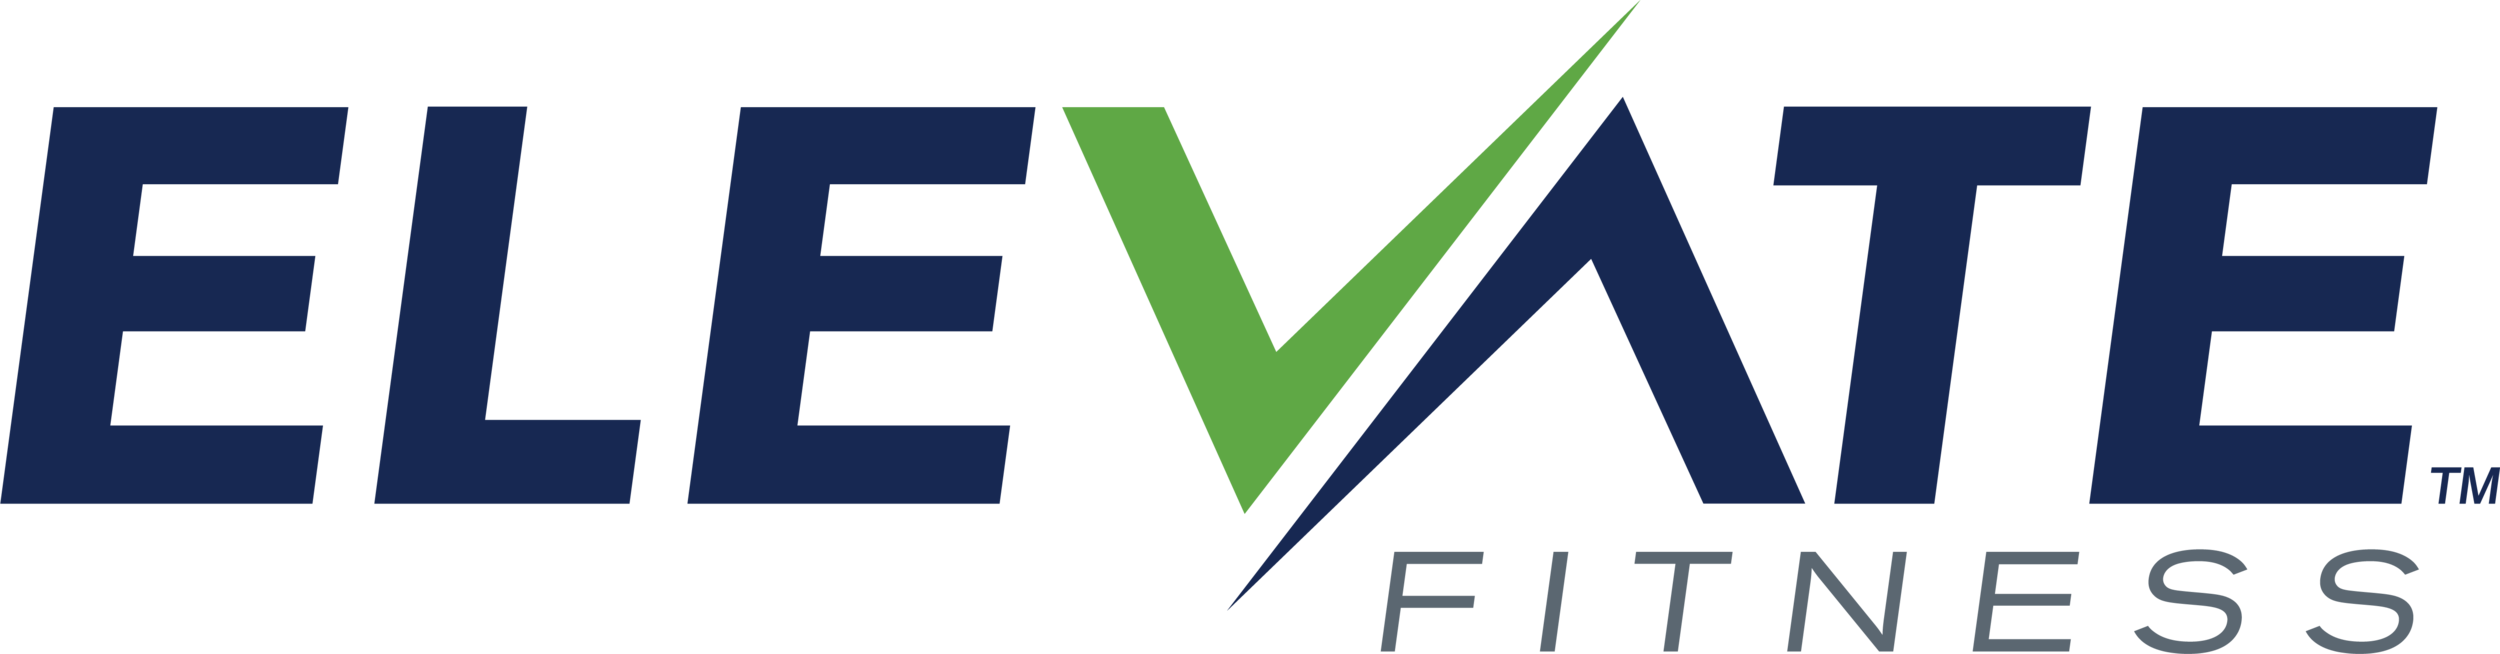 Elevate_Logo_Primary_3c.png